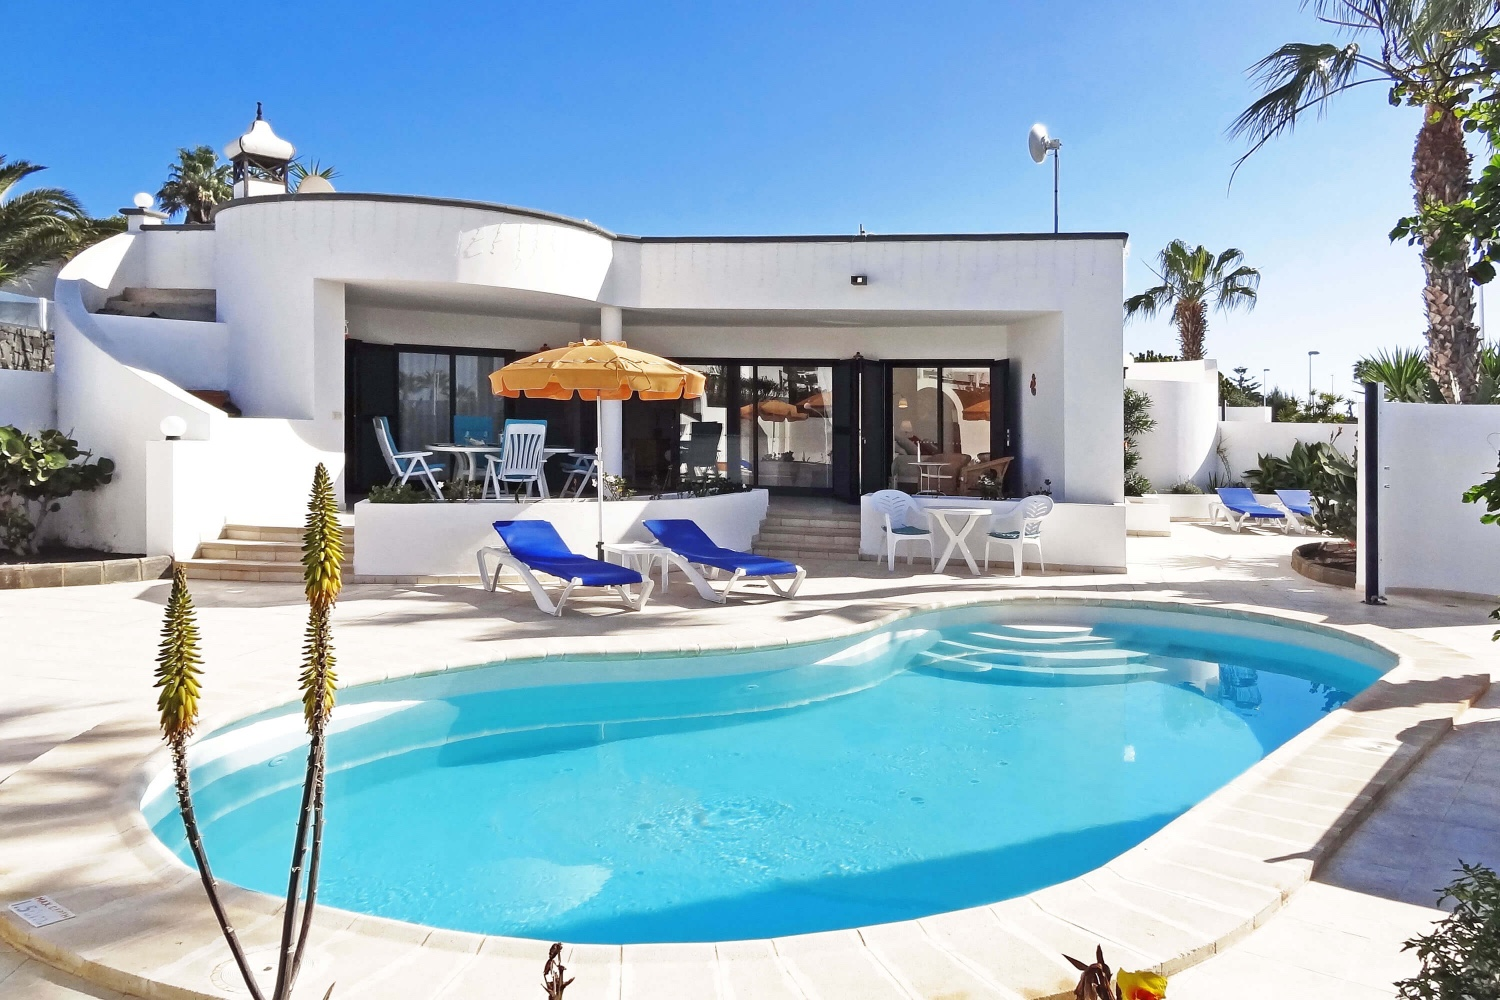 Two bedroom holiday home with large outside area and private pool in a beautiful area of Playa Blanca.